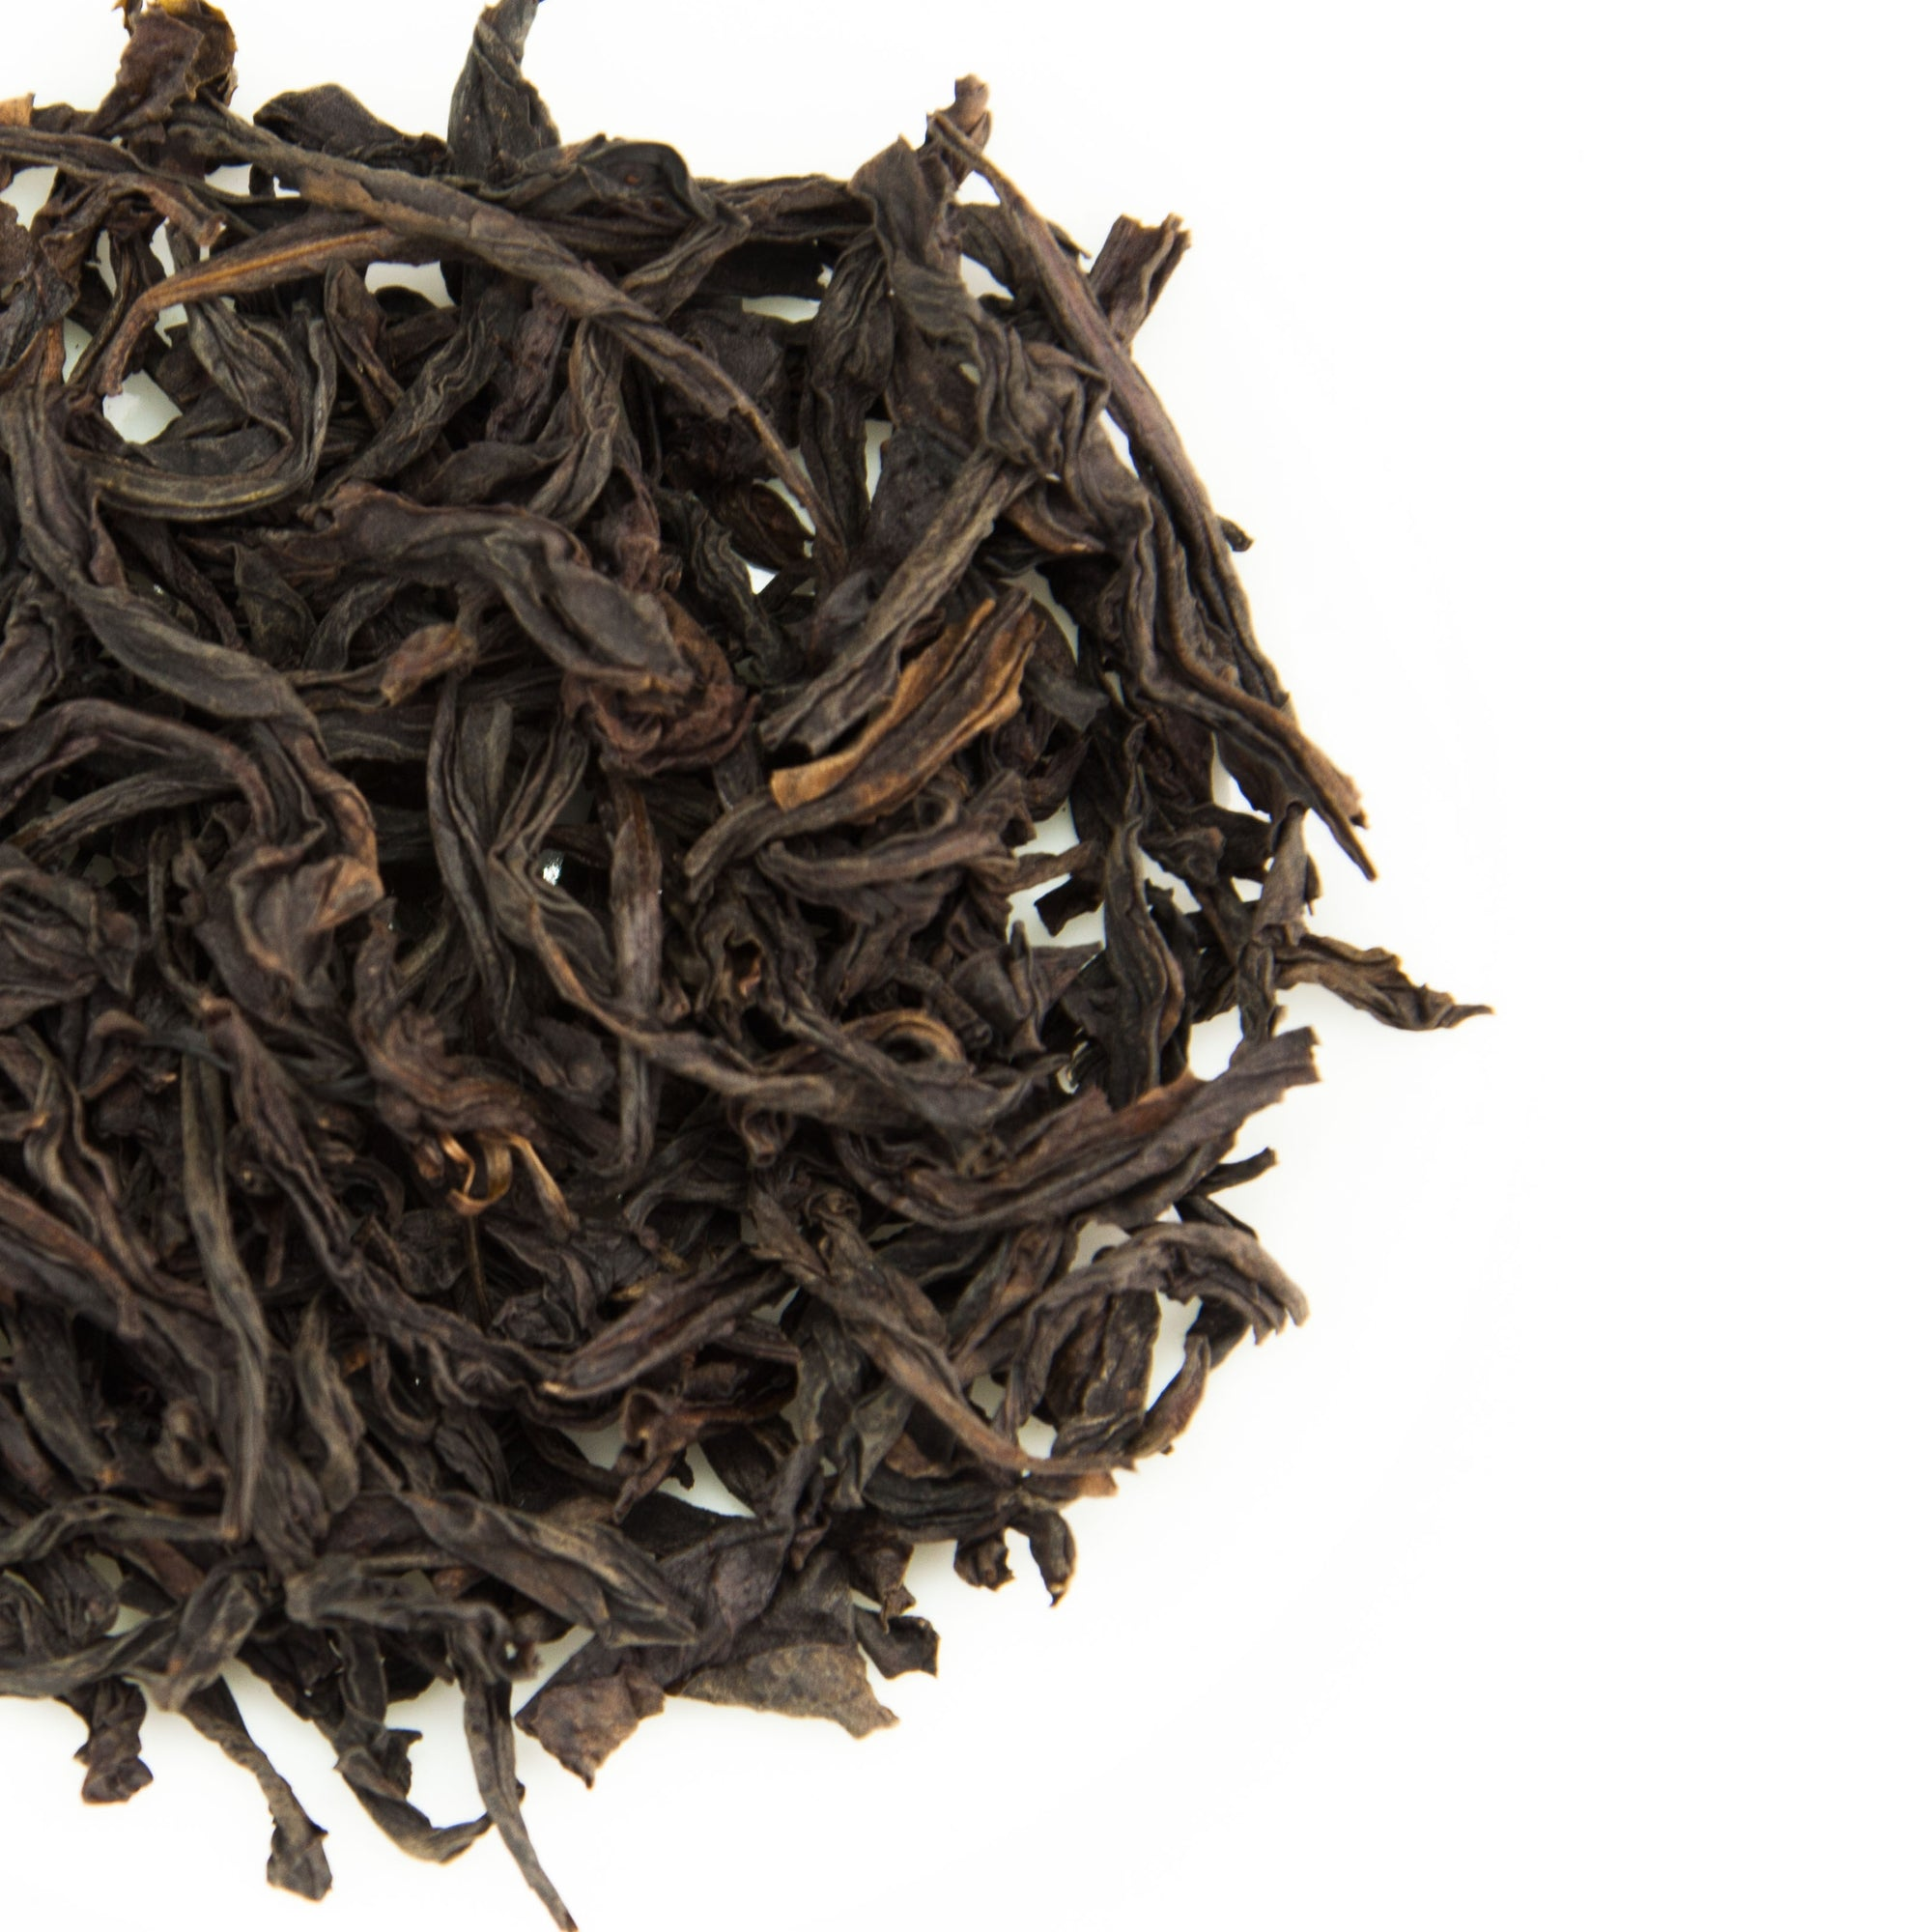 Wu Yi Rock Tea - Big Red Robe (Da Hong Pao)